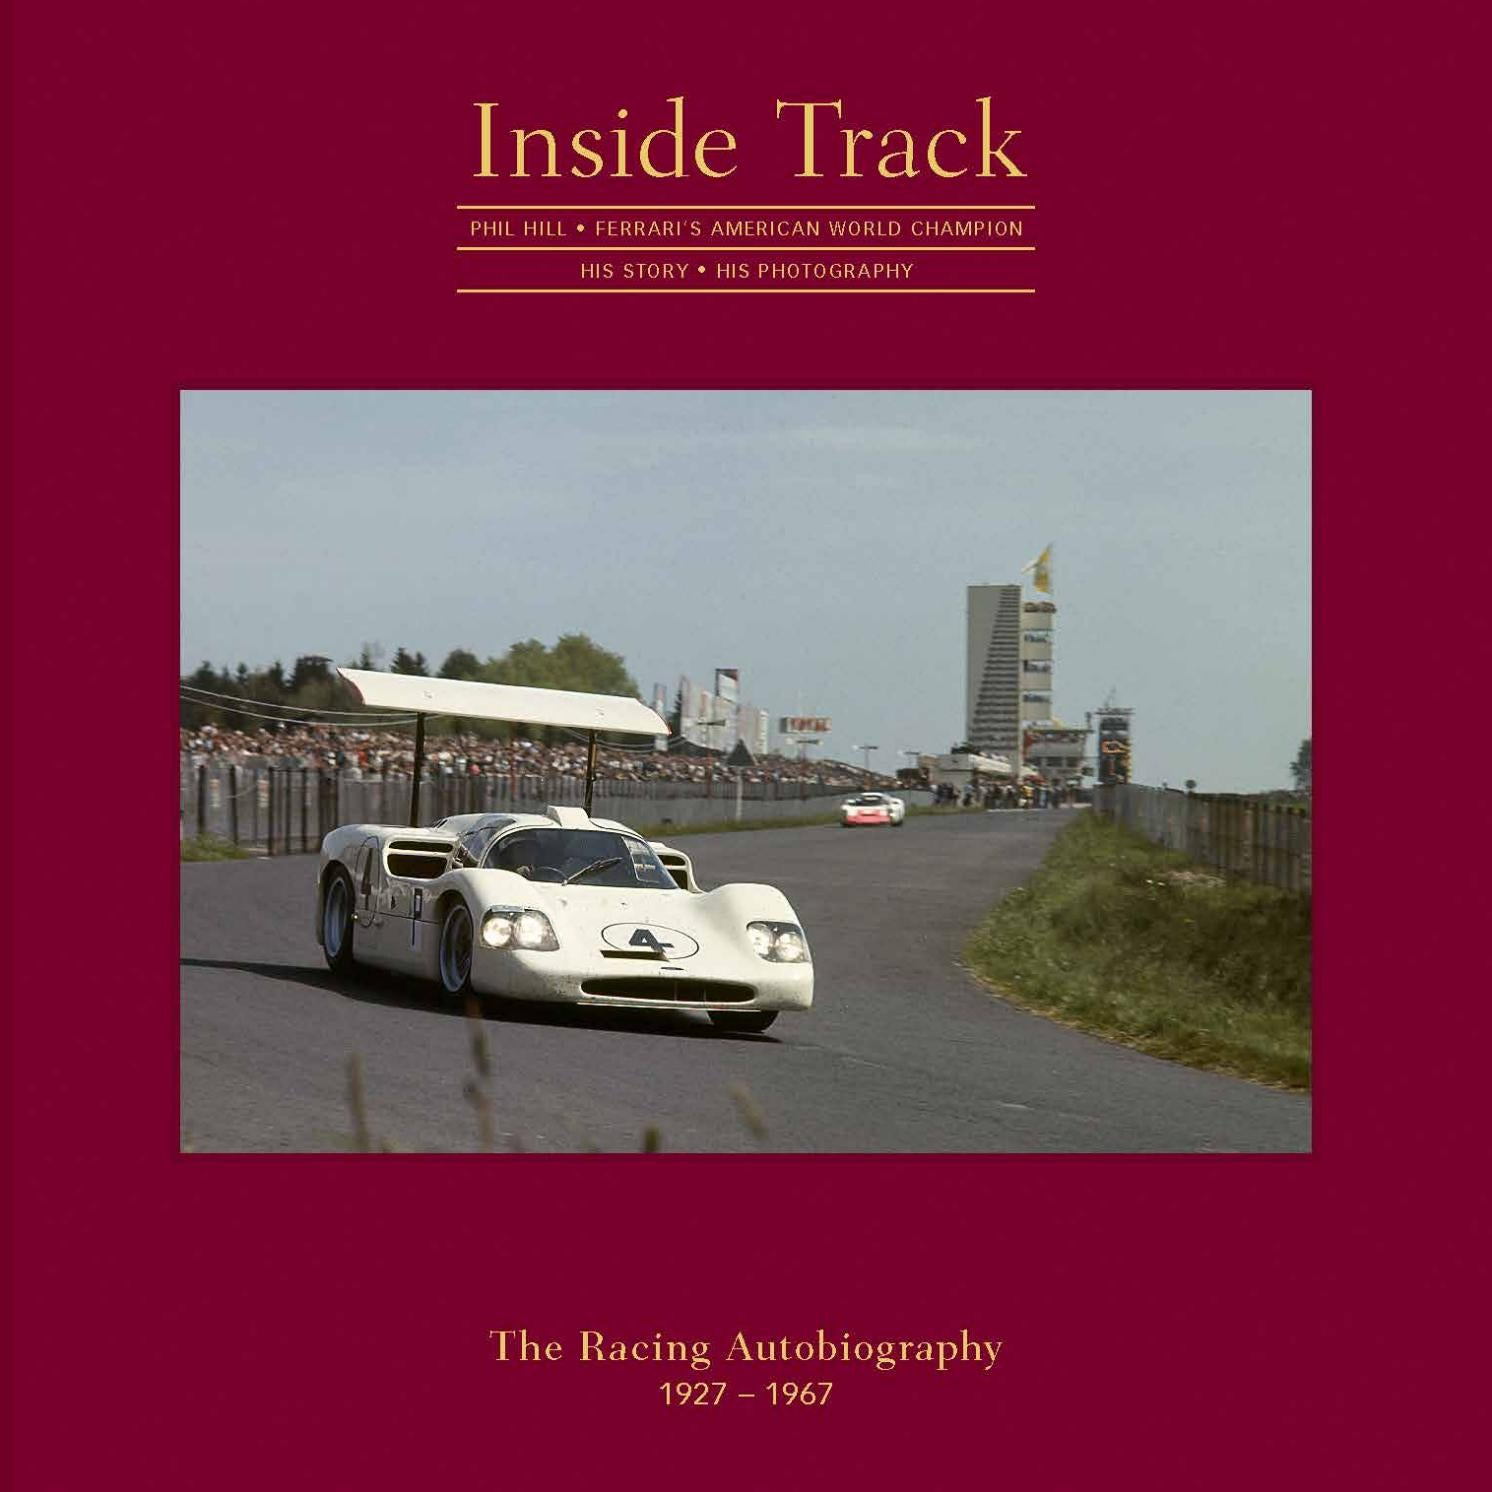 Inside Track - Autobiography by Watermark Publications (UK